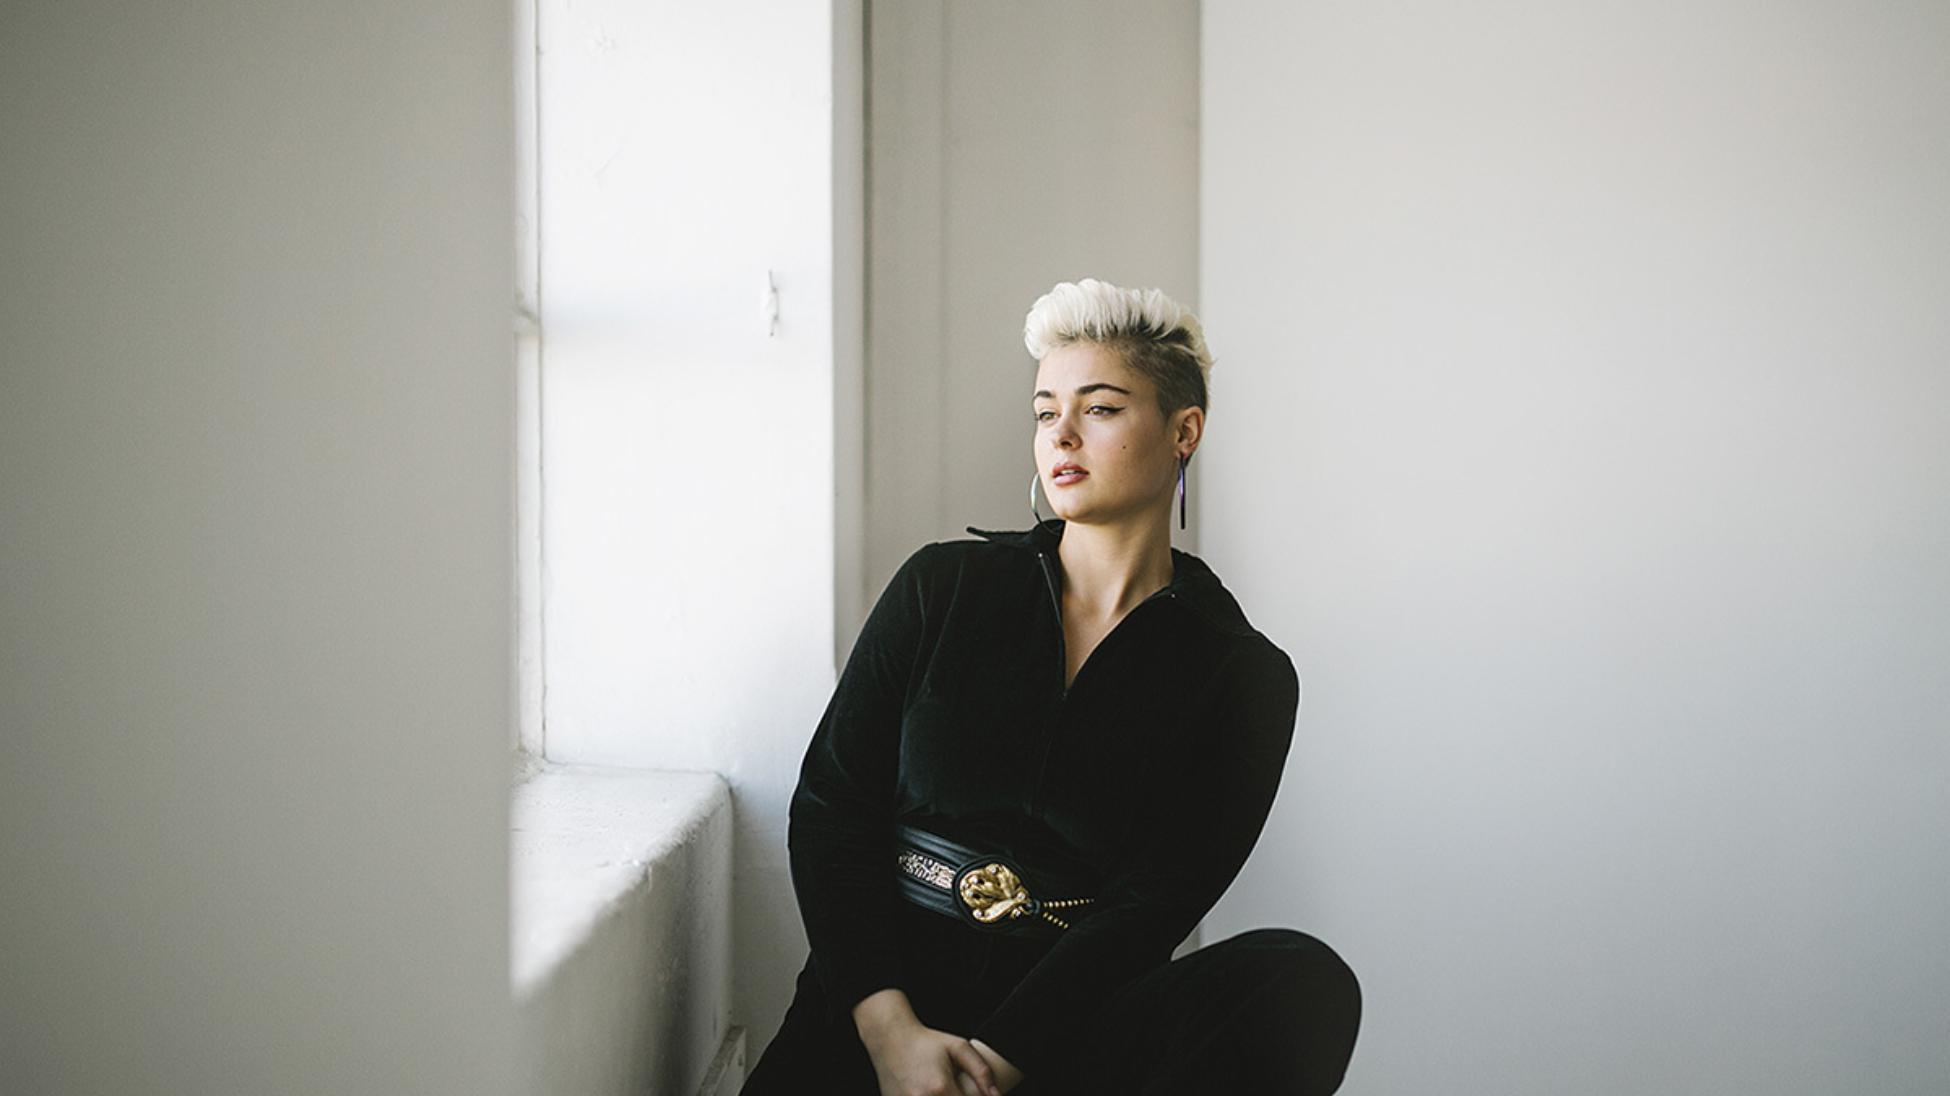 australian-model-stefania-ferrario-is-spearheading-the-droptheplus-movement-1474250245.jpg